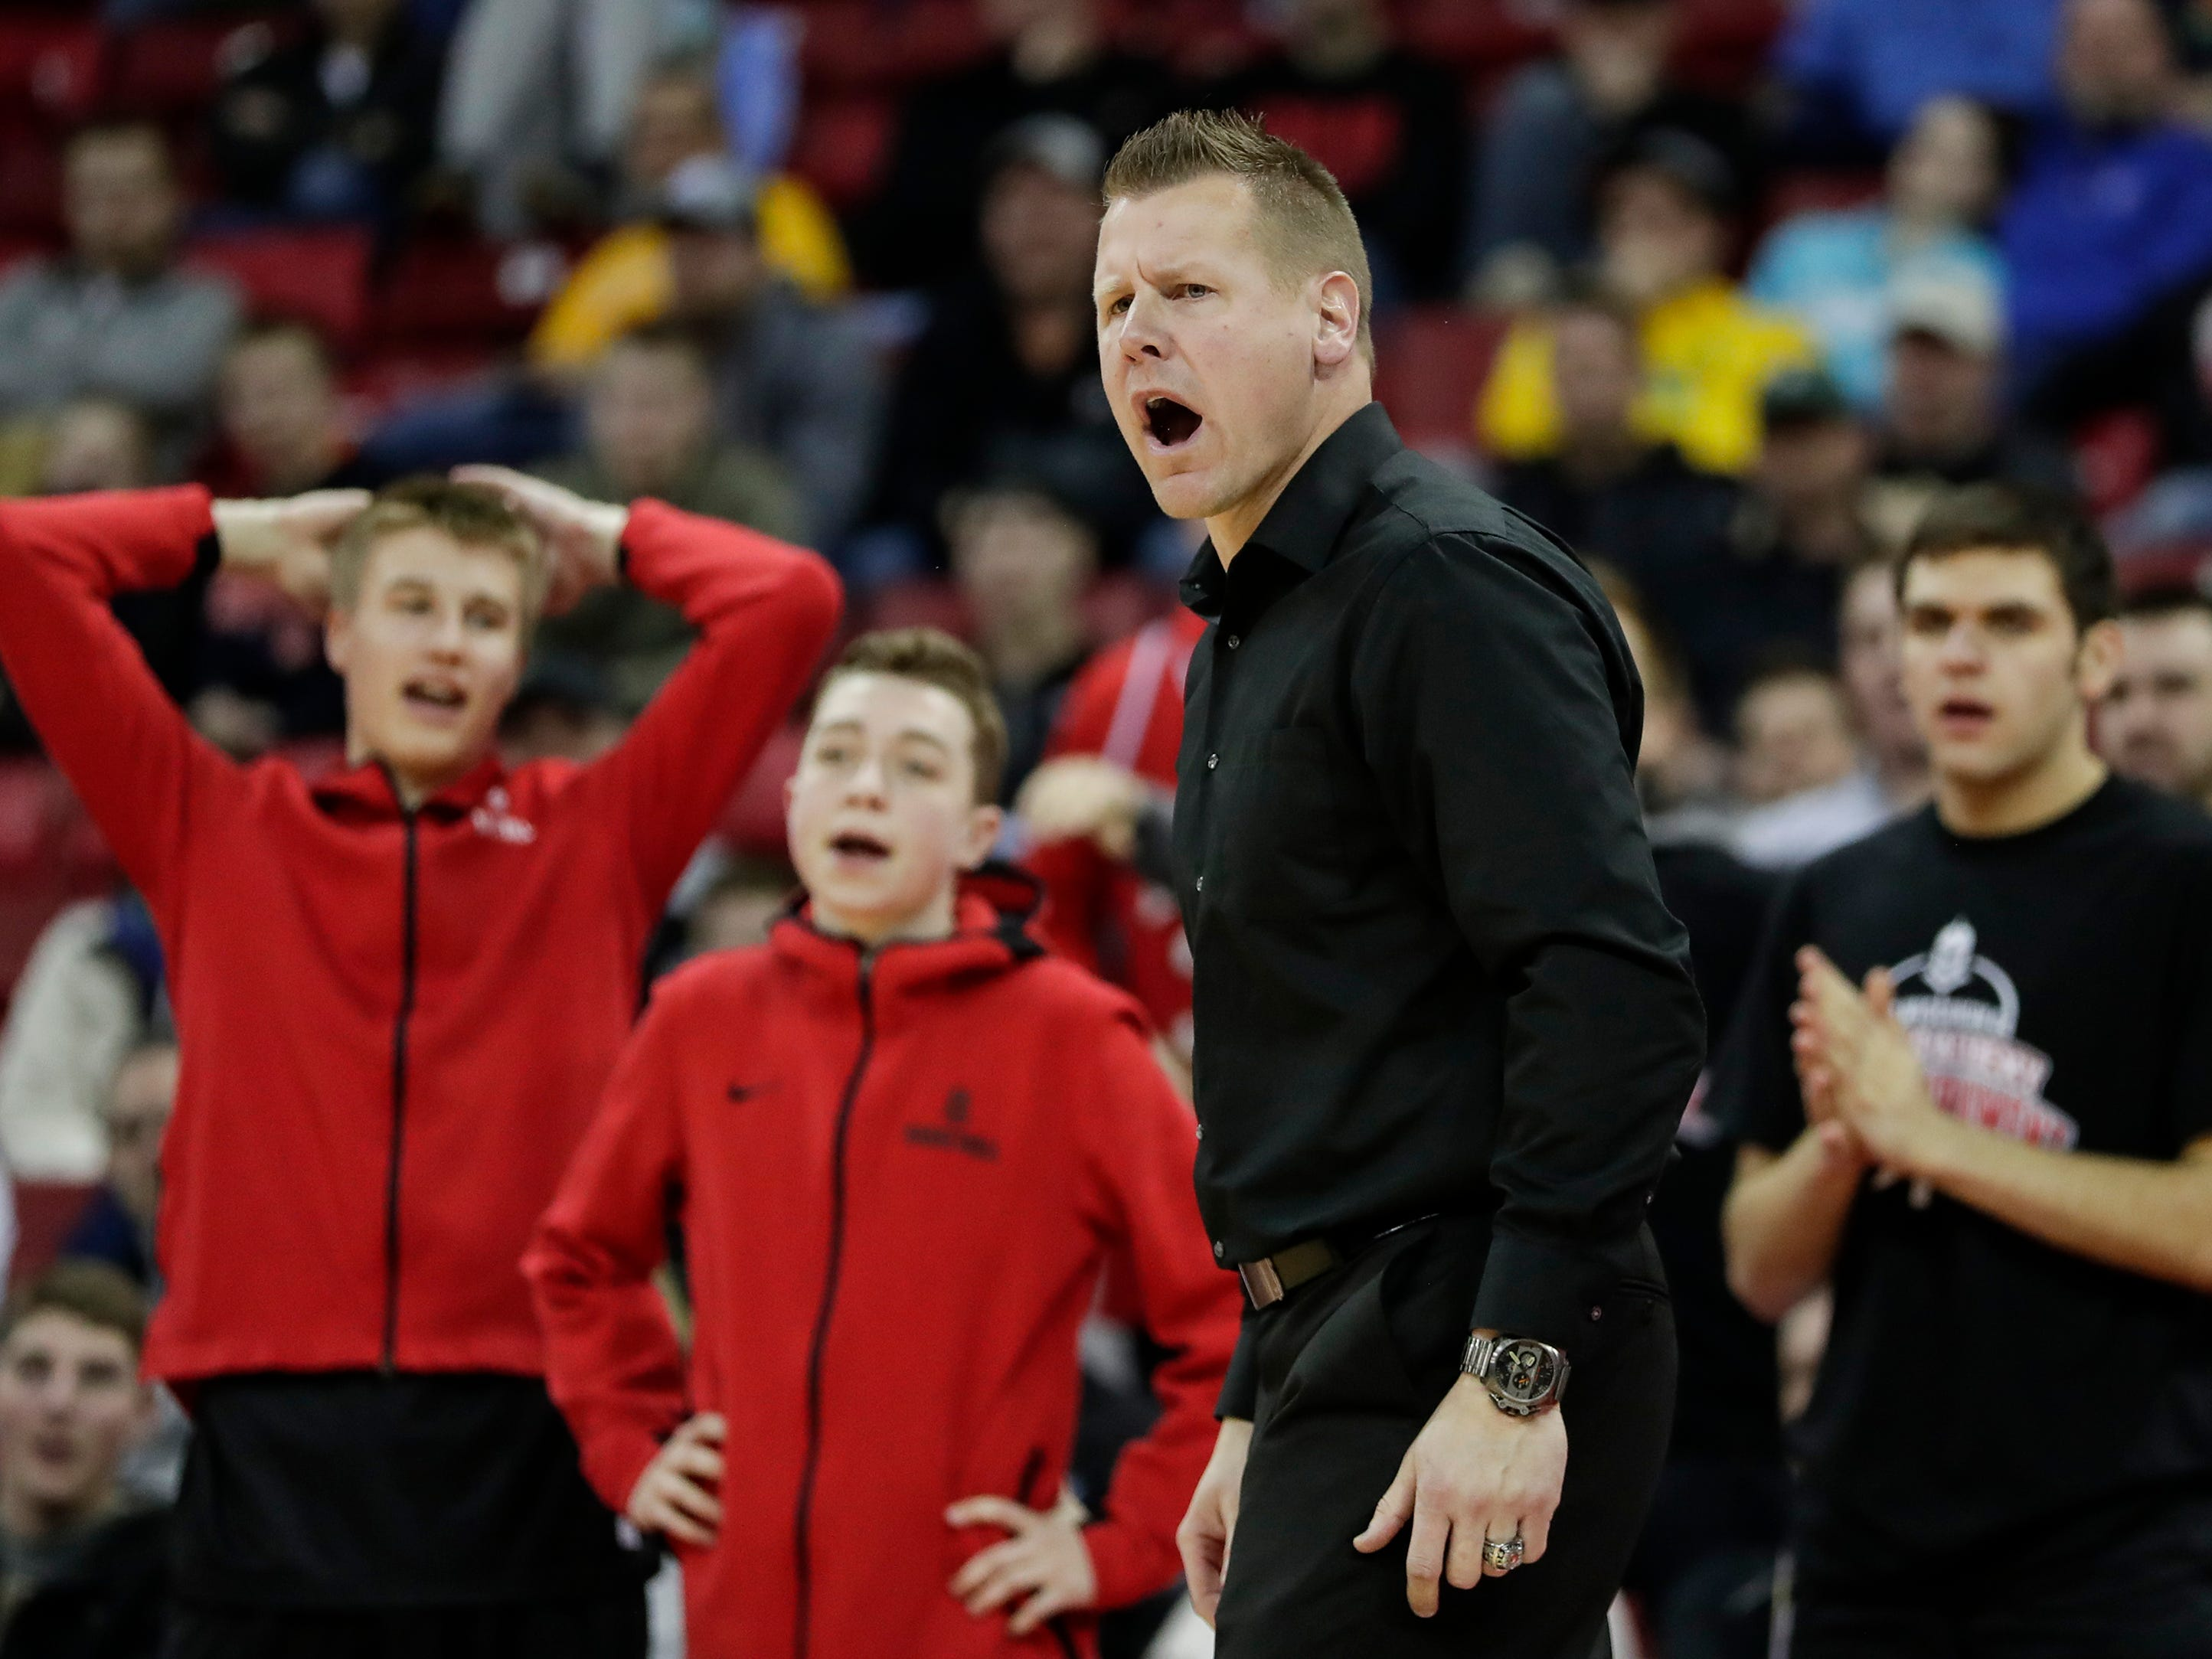 Lourdes Academy's Brad Clark disagrees with a referee's call during their WIAA Division 4 boys basketball state semifinal against Osseo-Fairchild High School at the Kohl Center Thursday, March 14, 2019, in Madison, Wis.